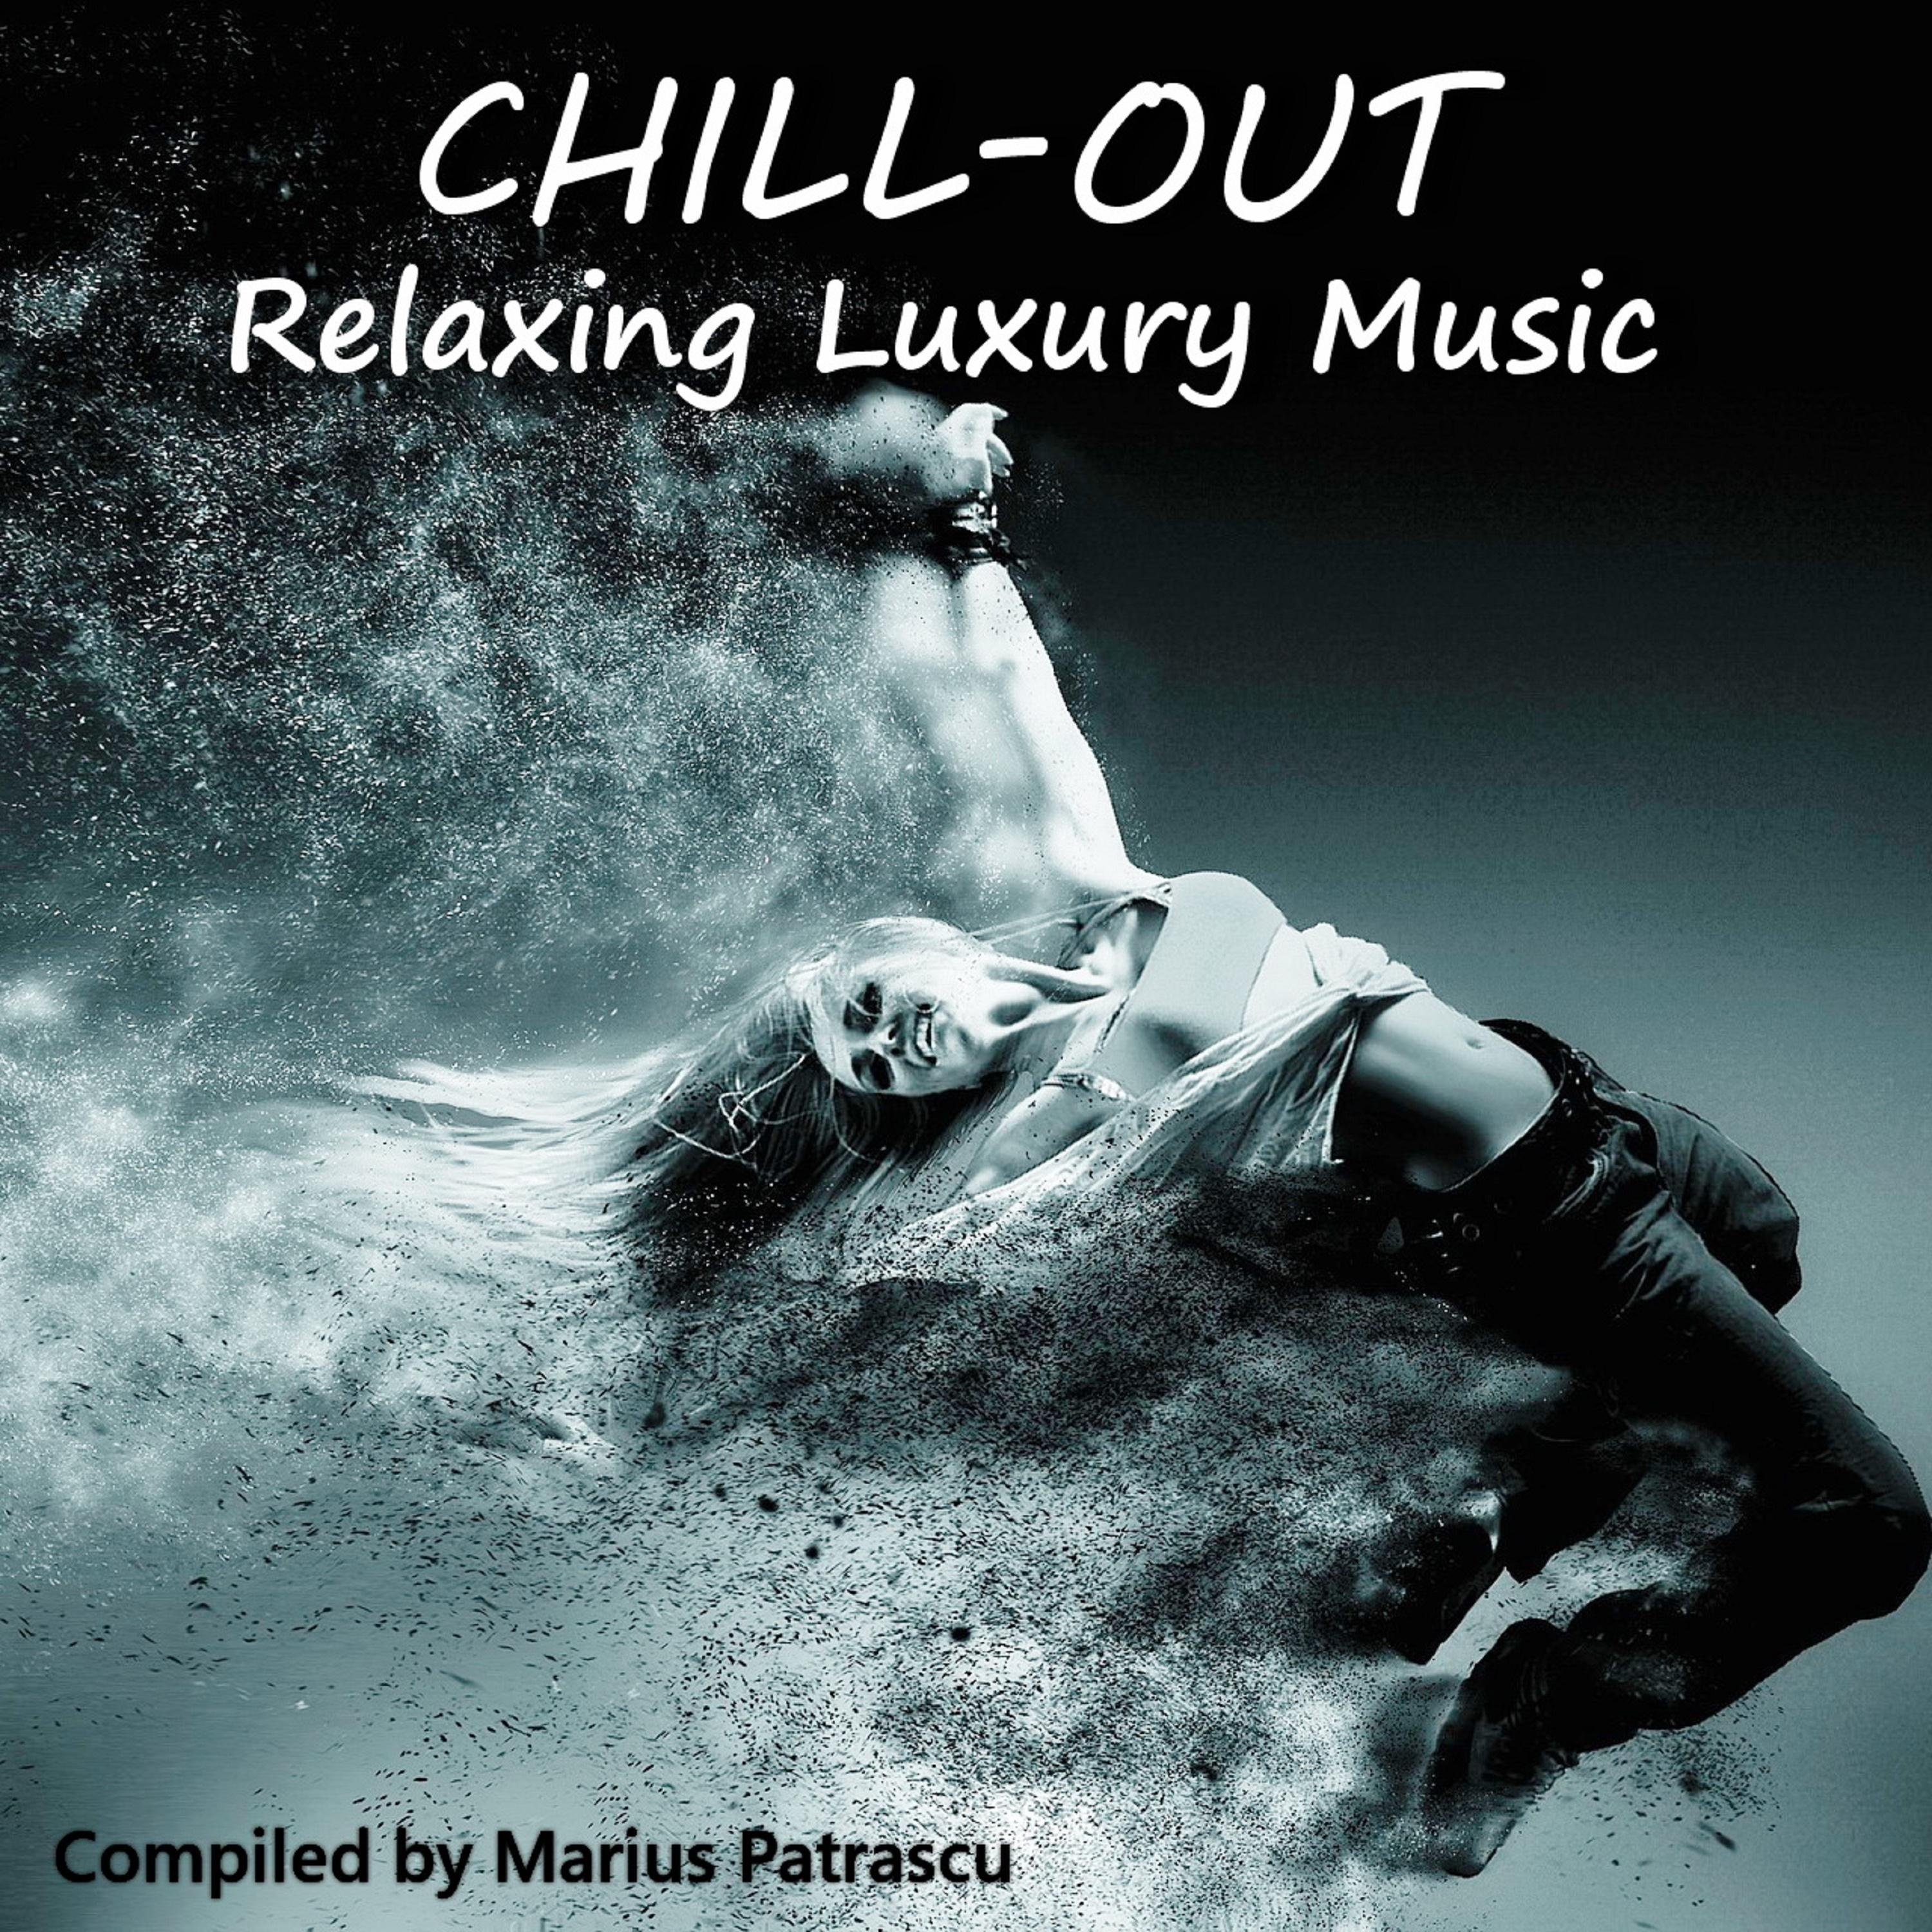 Chill-Out Relaxing Luxury Music (Mixed By Marius Patrascu) [Continuous DJ Mix]